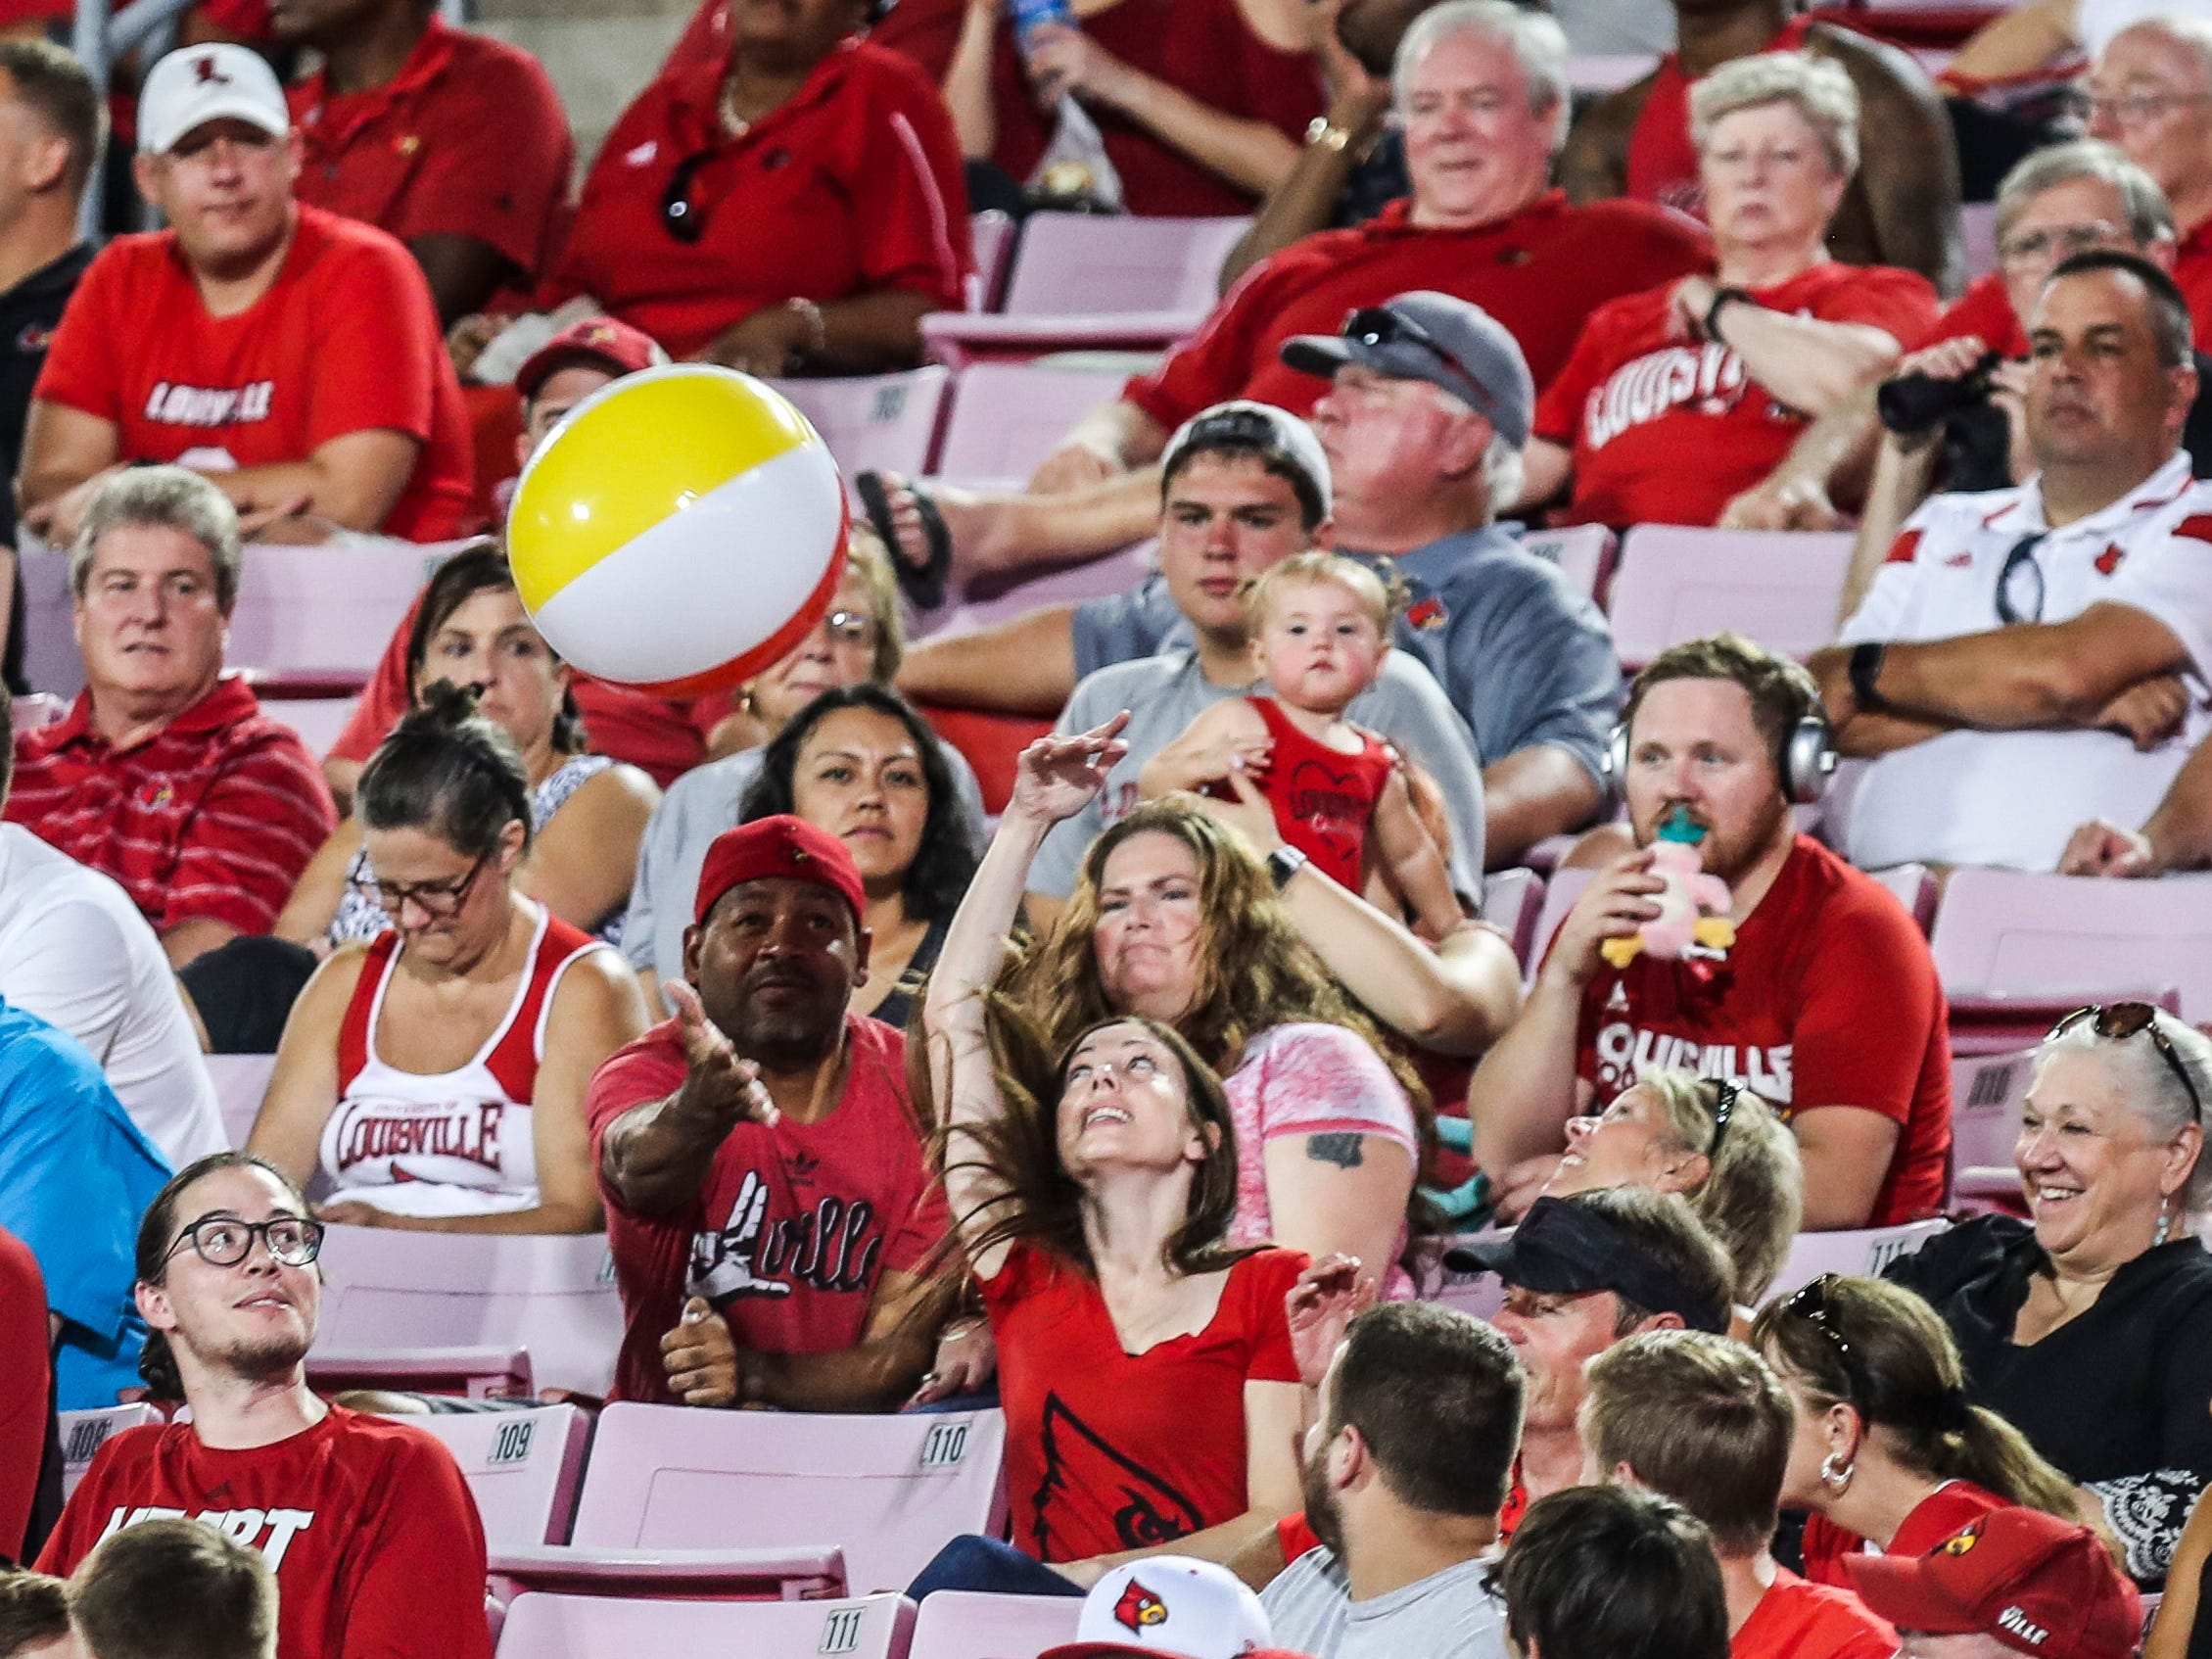 Fans in the seats found some side entertainment with a beachball as the Western Kentucky Hilltoppers went up 14-3 on the Cardinals in the first half Saturday, Sept. 15, 2018.